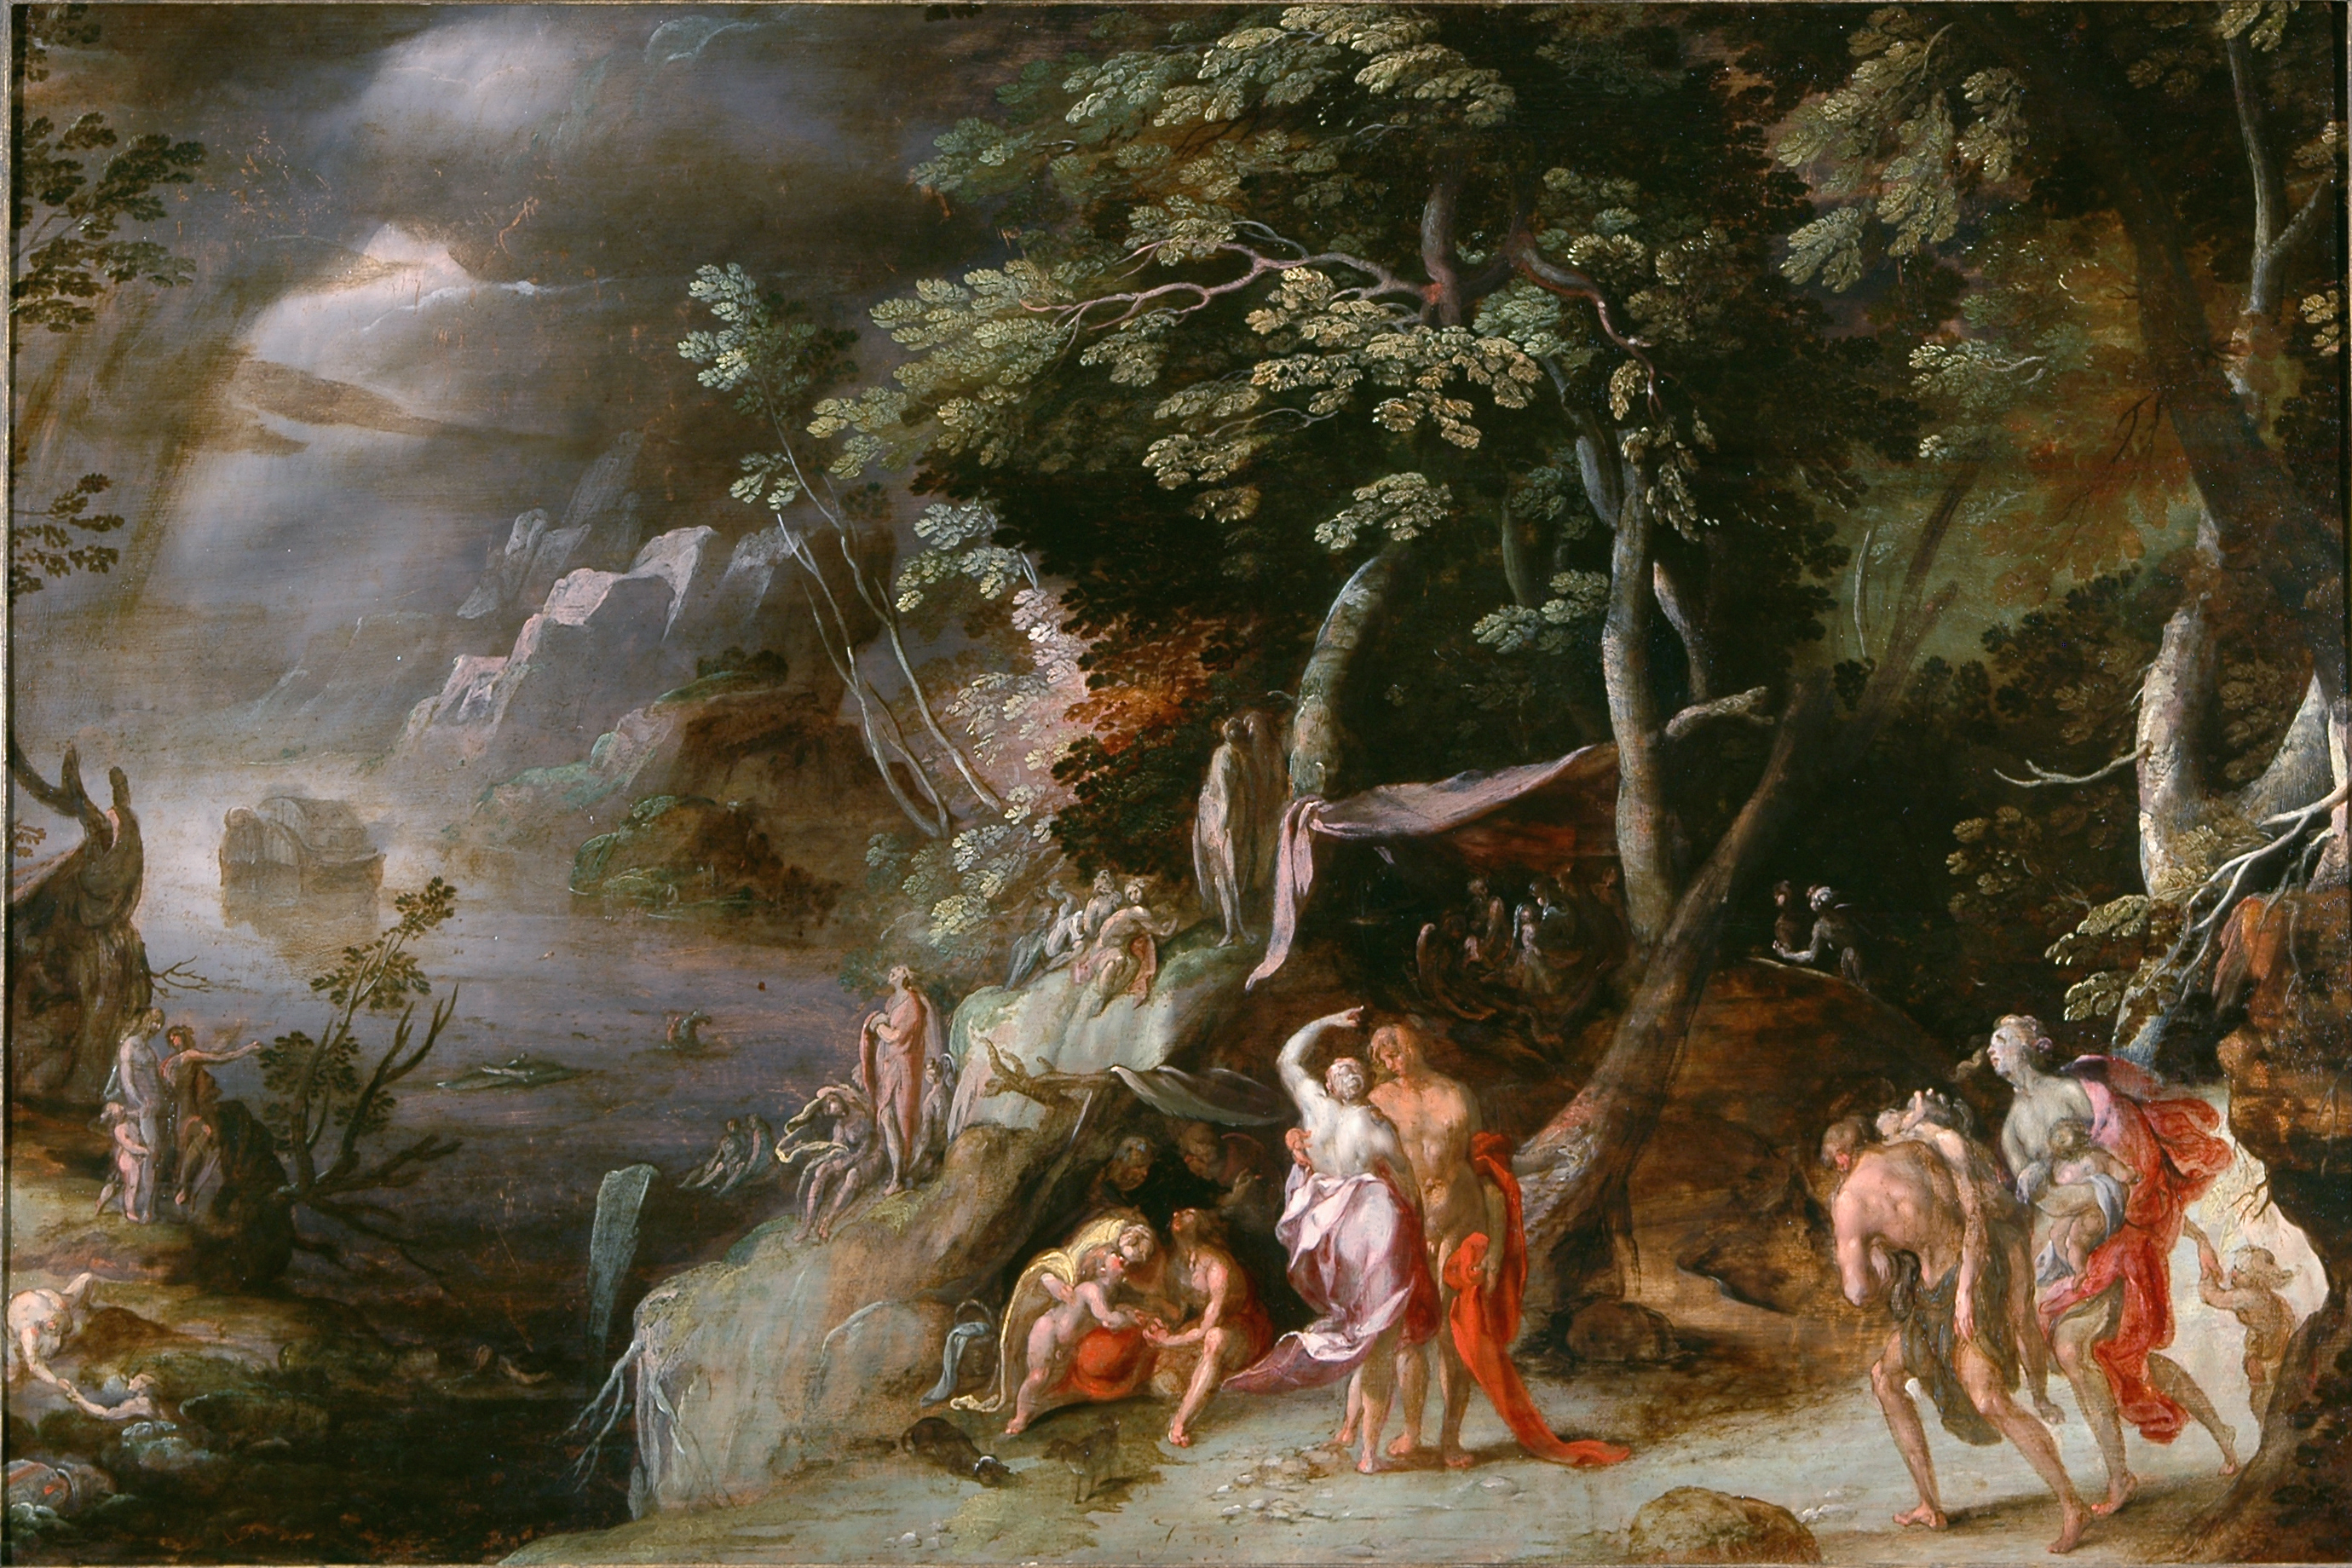 an analysis and comparison of the great flood in the old testament and the flood in the epic of gilg 27-3-2014 but in the 1980s satisfaction through marriage may the factors contributing to the analysis and a comparison great flood in the old testament.